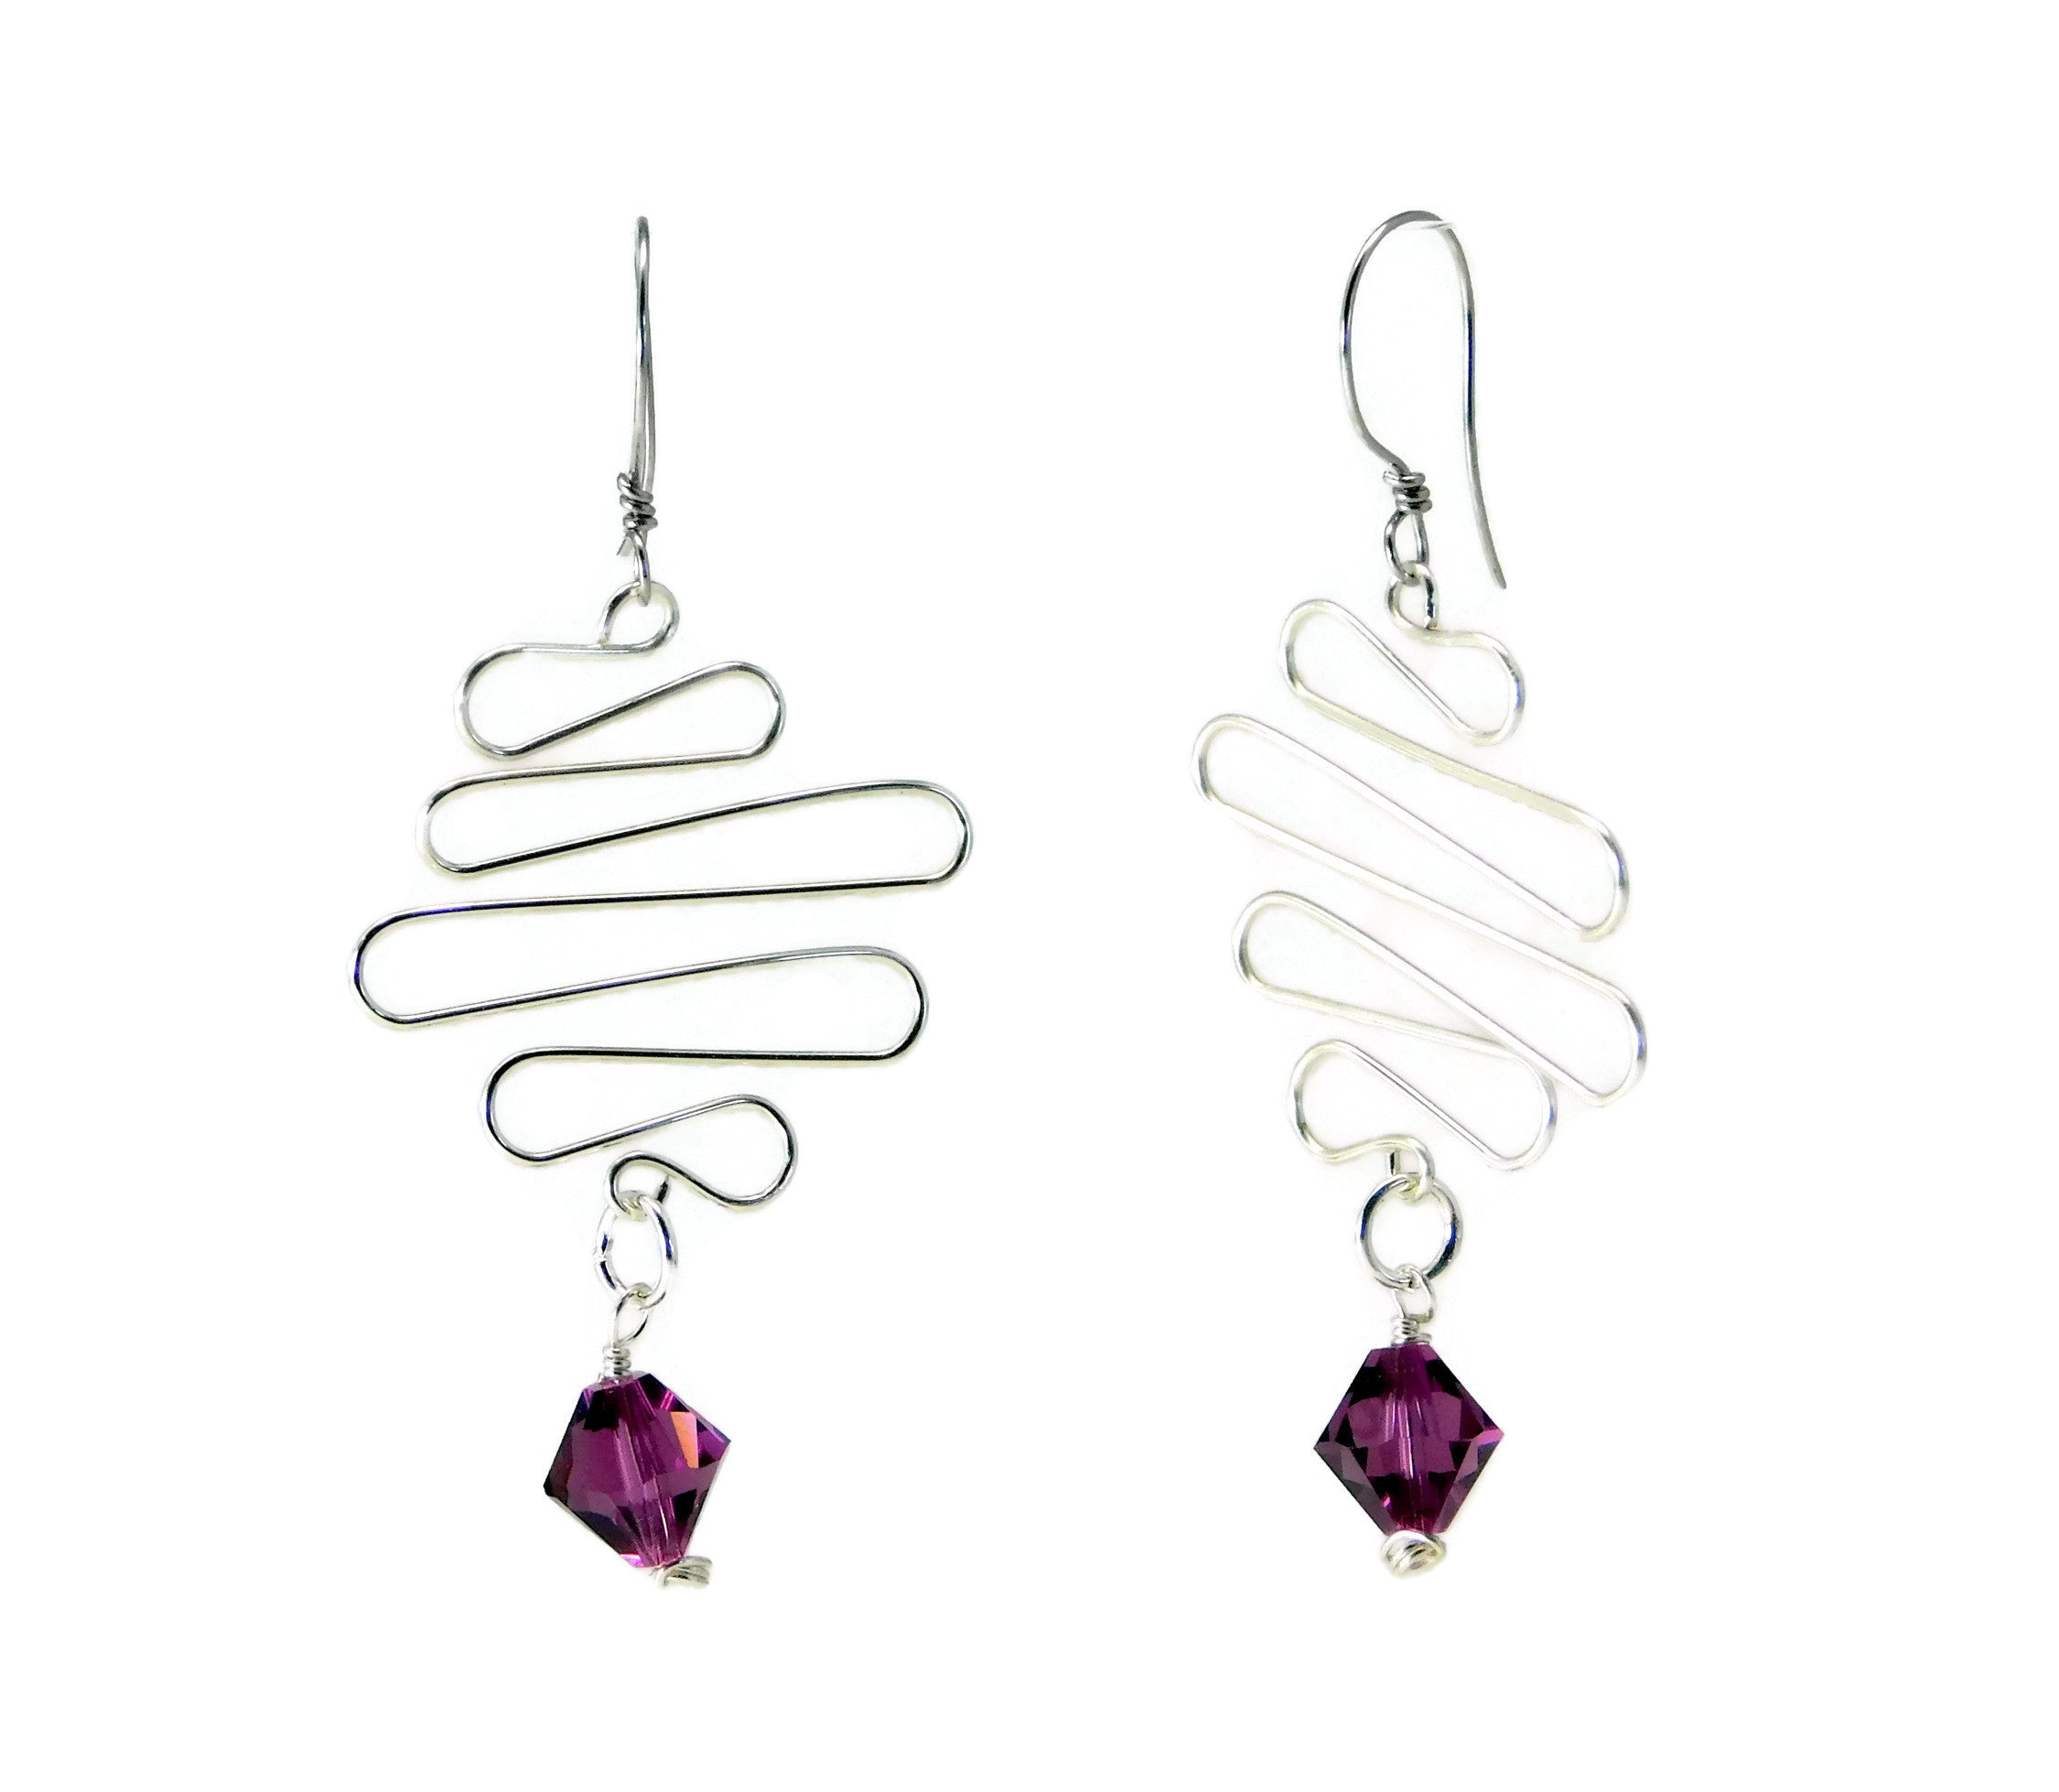 Swarovski Scribble Earrings DIY Wire Wrapping Kit